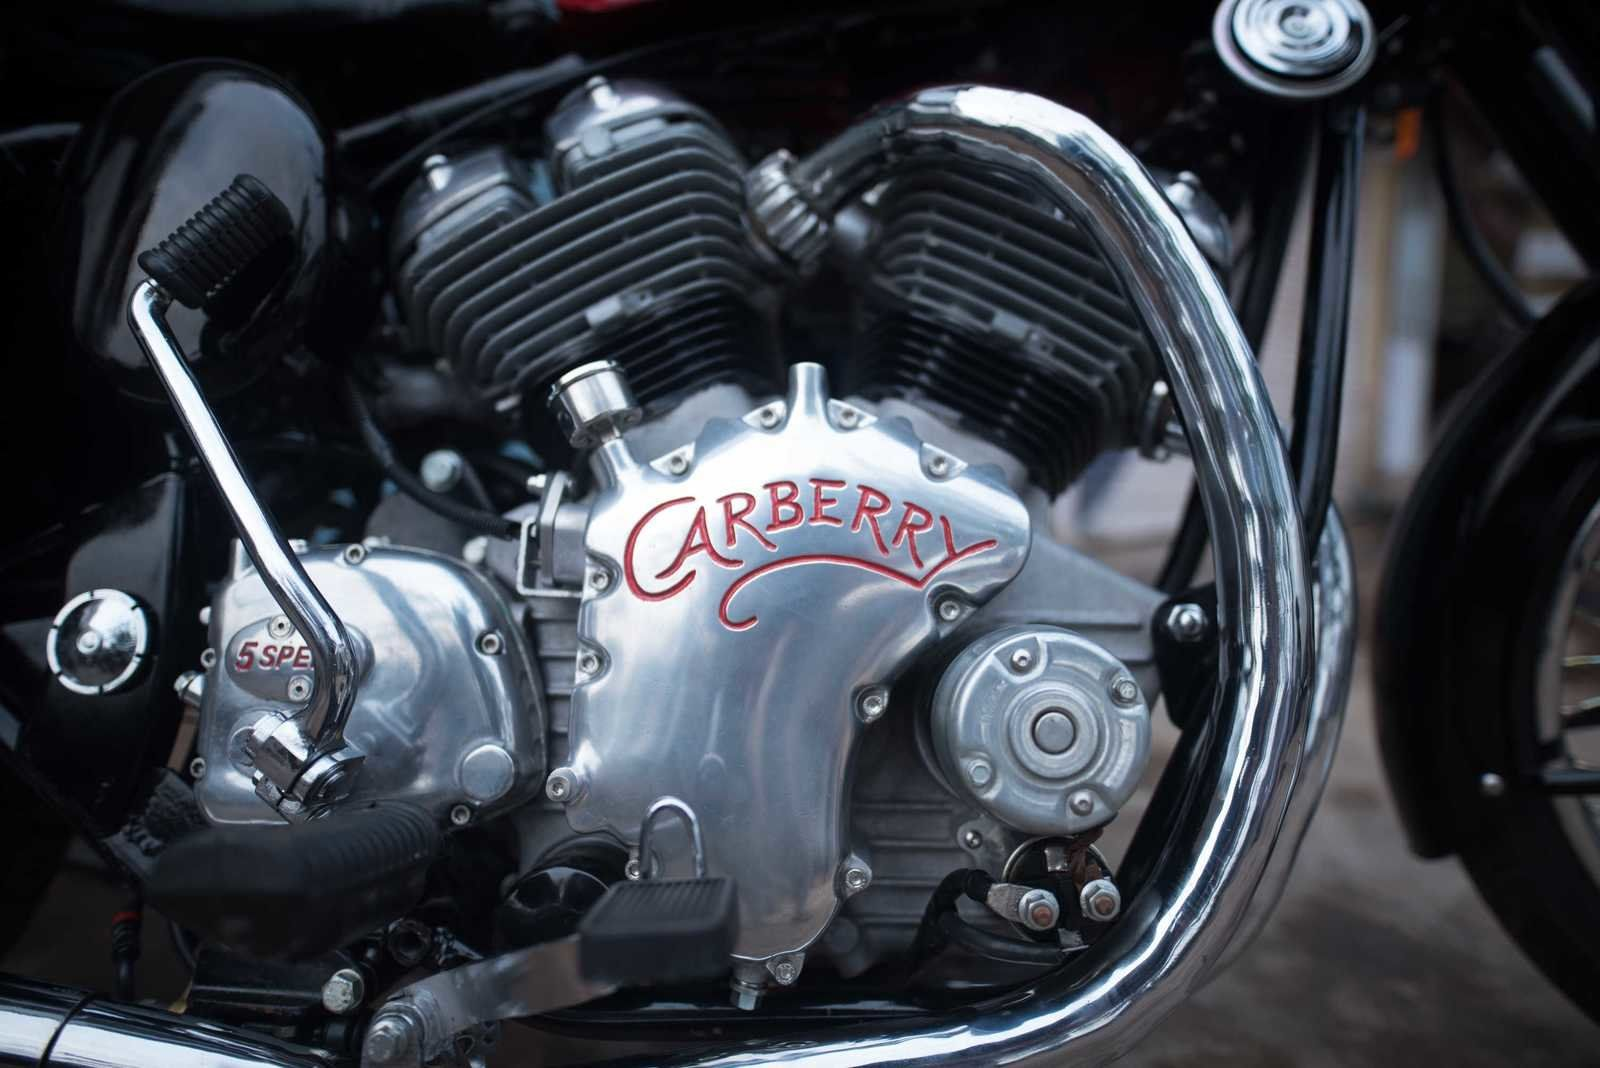 hight resolution of carberry motorcycles launched a brand new 1 lire v twin engine